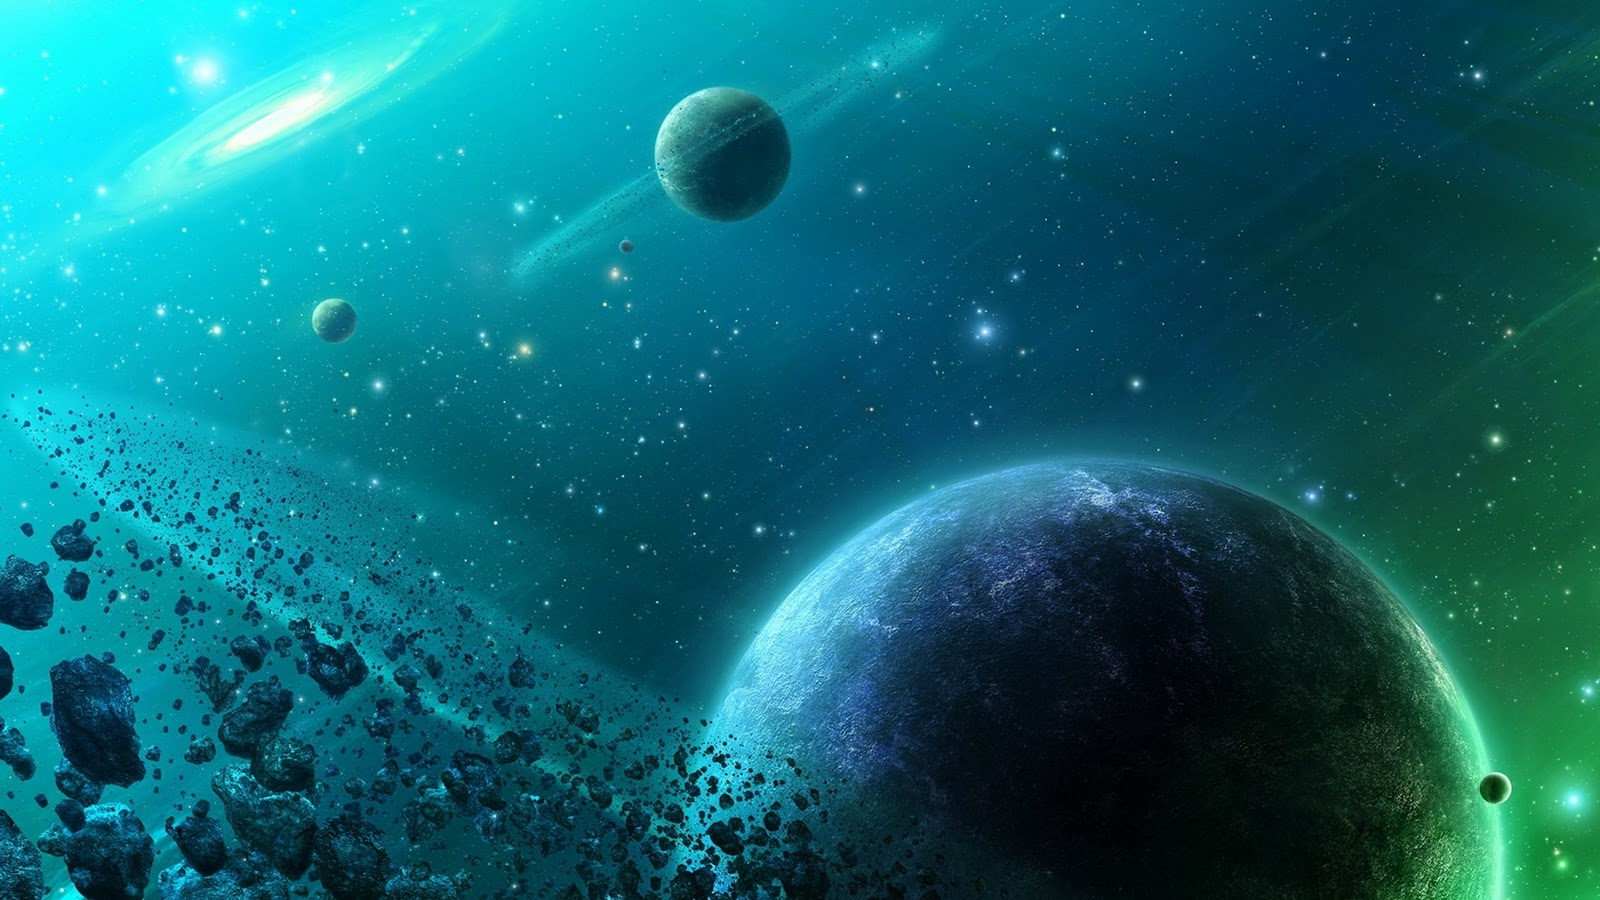 73 Astronomy Desktop Backgrounds On Wallpapersafari